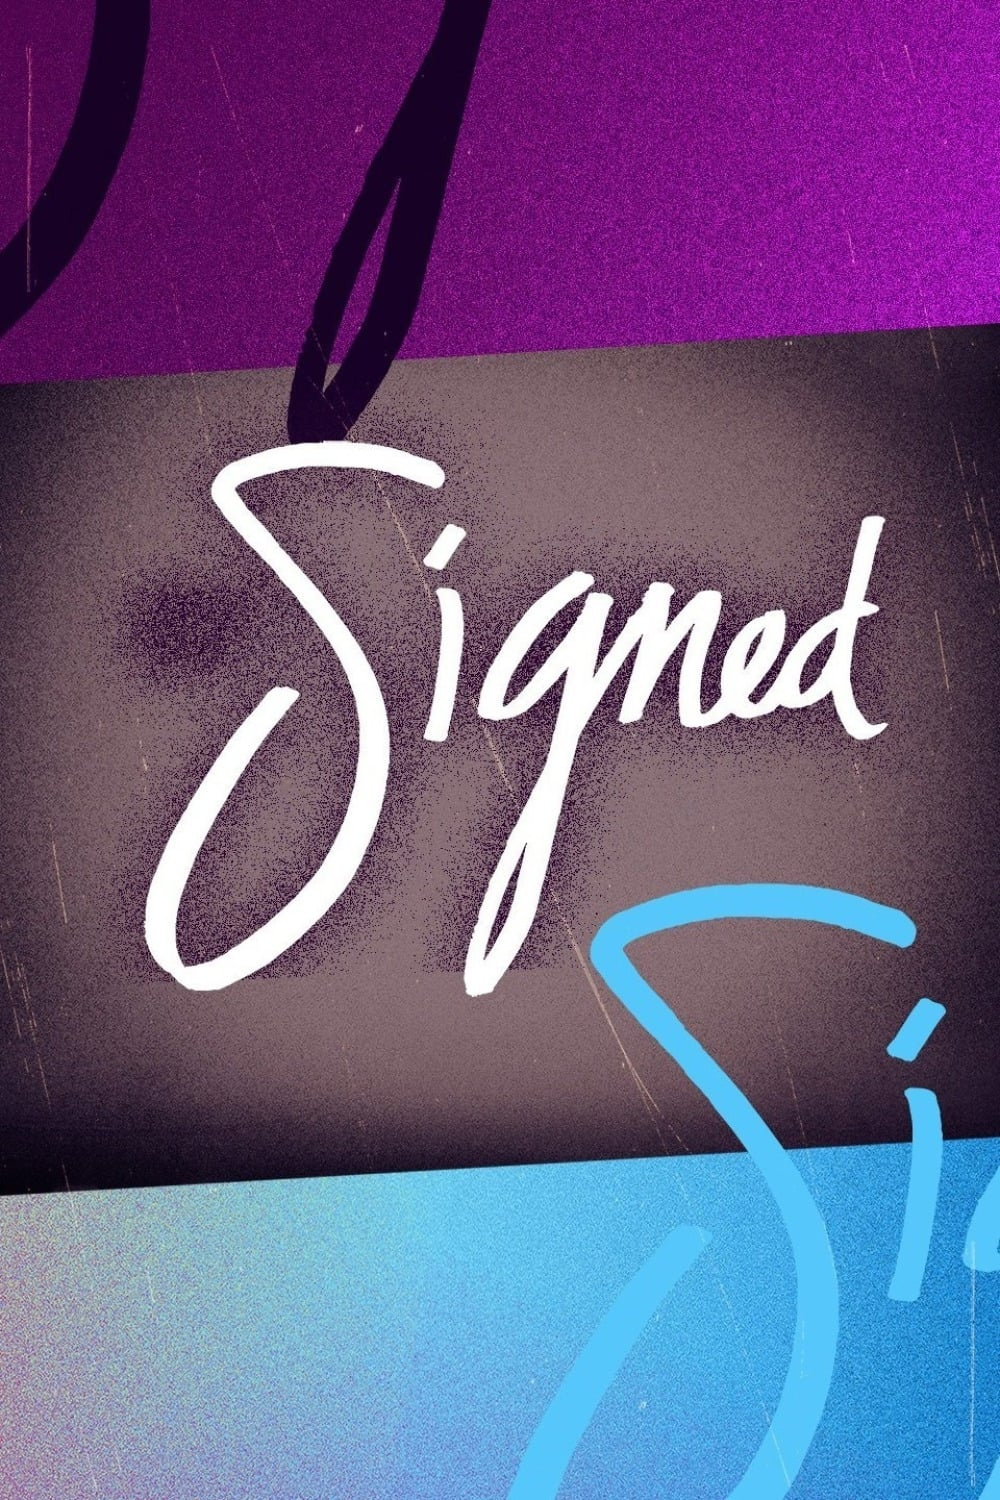 Signed (2017)